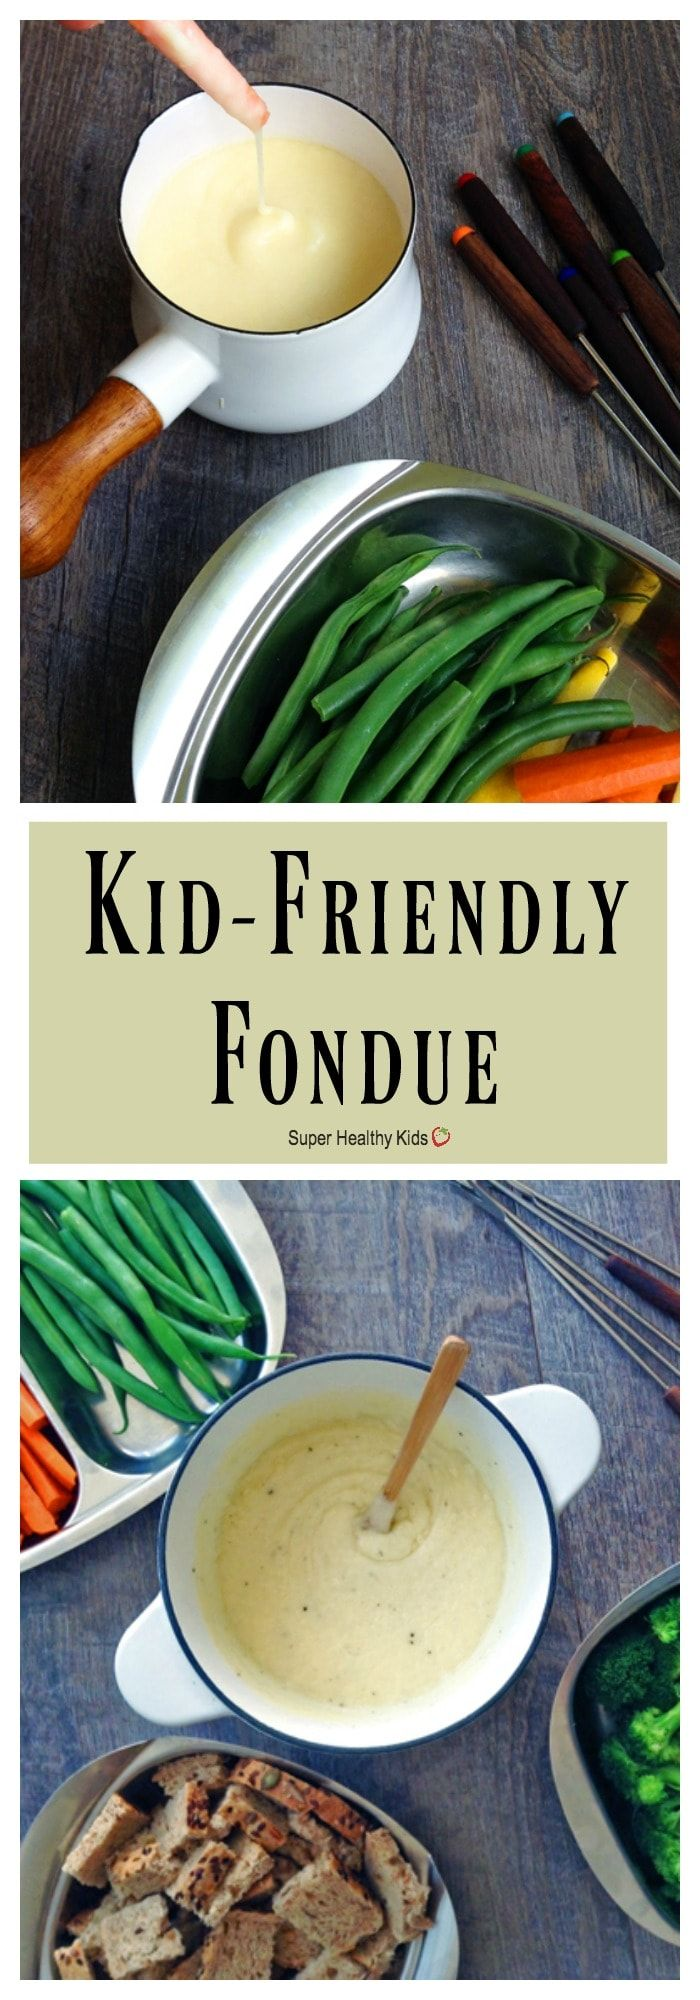 Kid-Friendly Fondue images